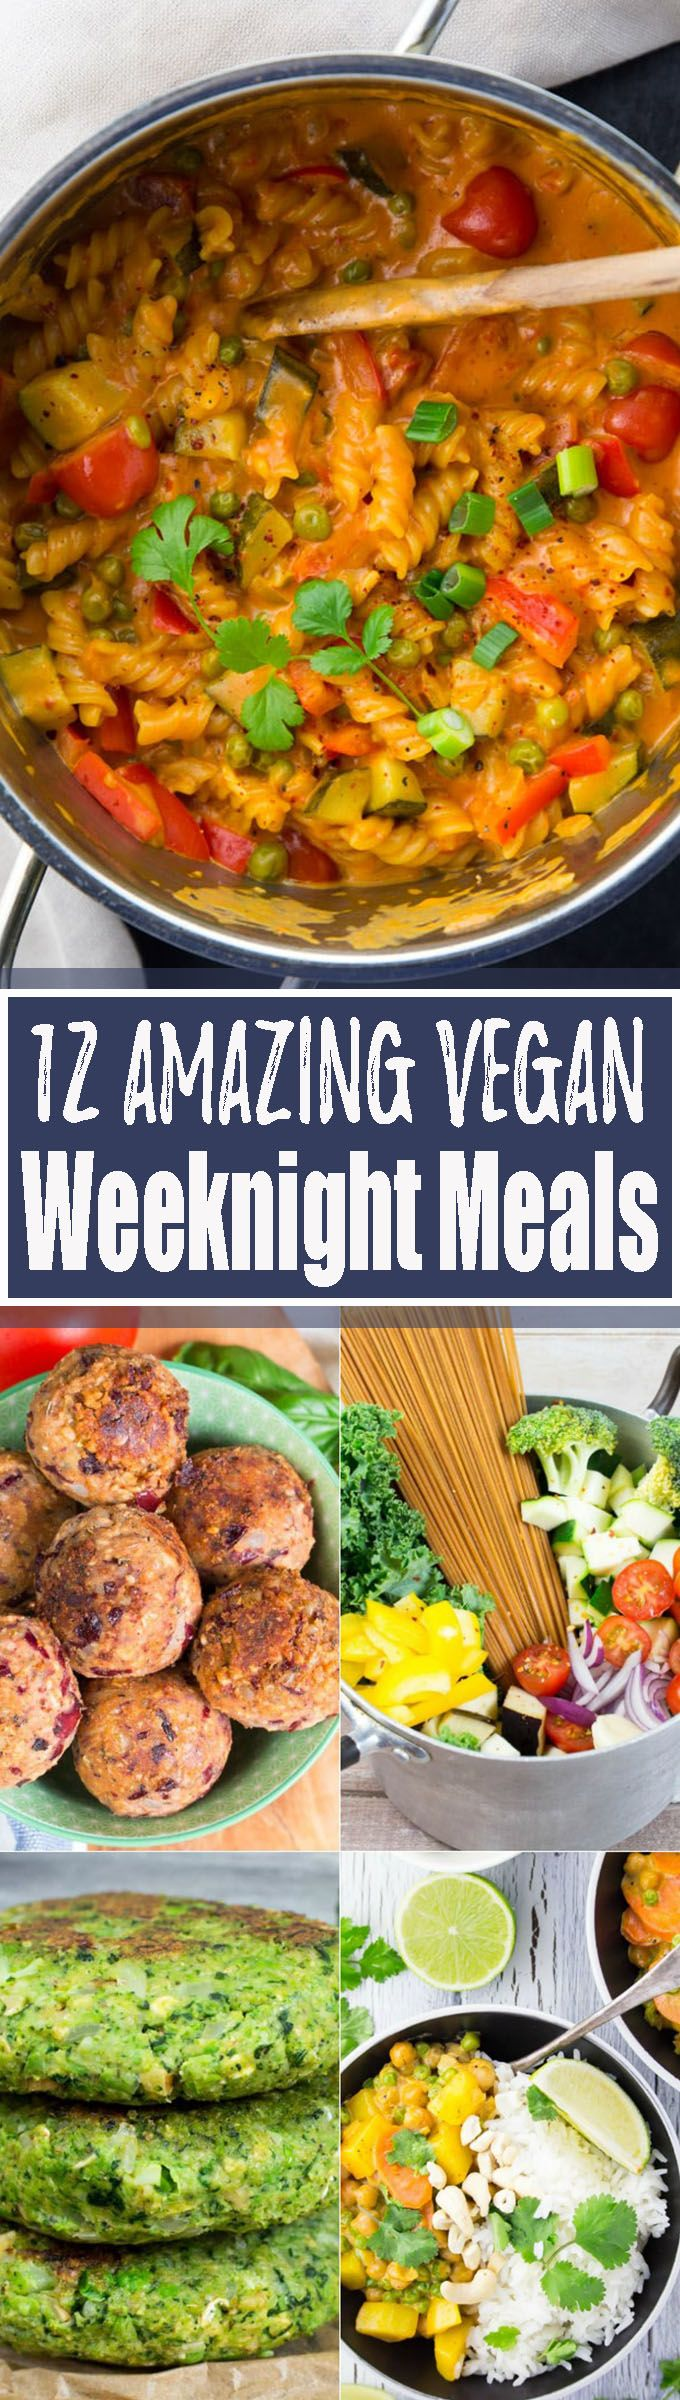 These 12 vegan recipes are perfect when you're looking for delicious and easy vegan weeknight meals! The roundup includes vegan pasta recipes, one pot meals, a vegan burger, a vegan curry, and vegan meatballs. SO yummy! <3 | veganheaven.org